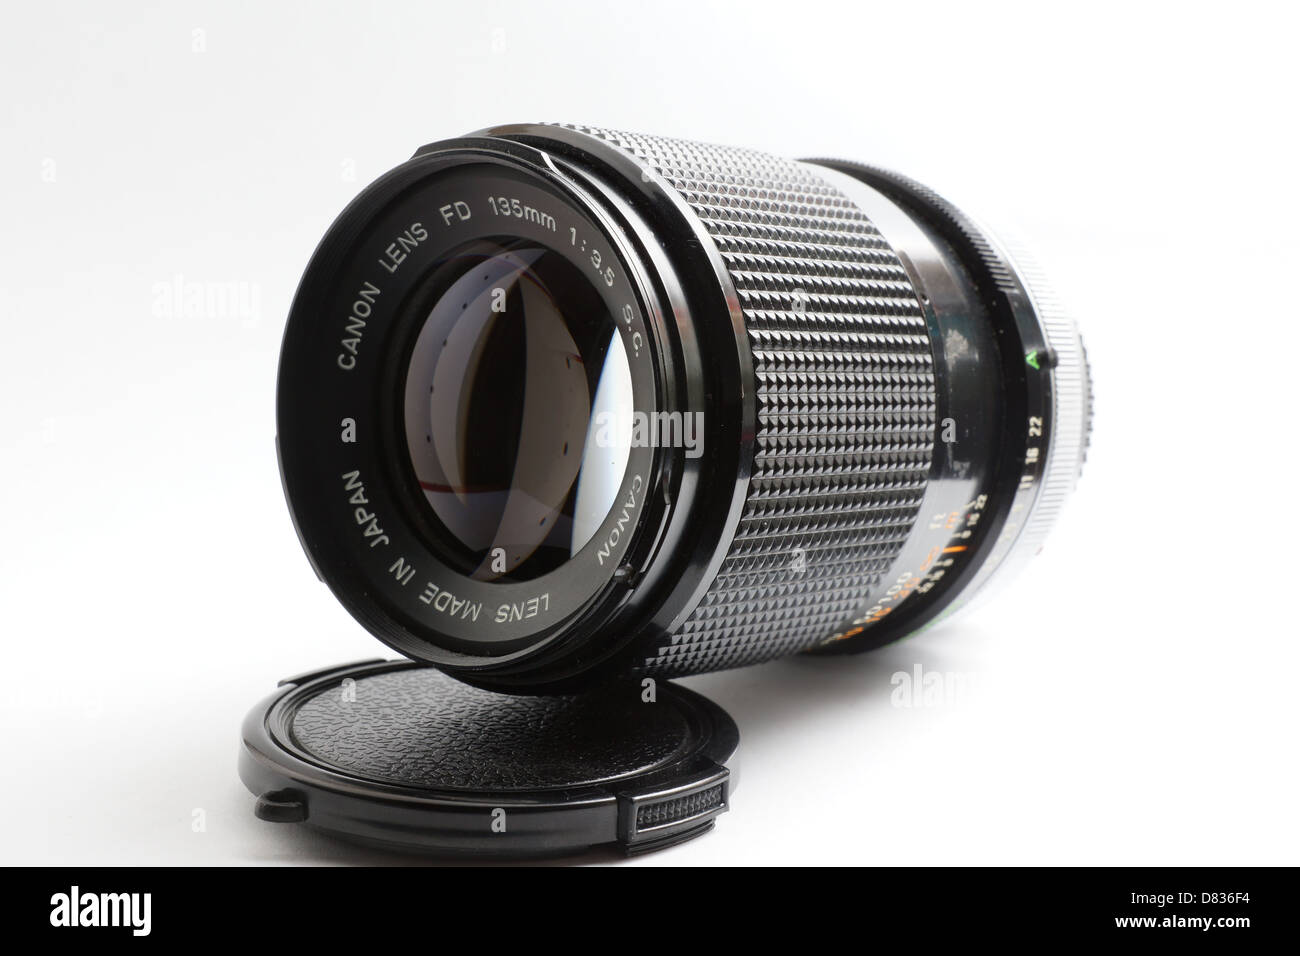 Camera lens for Canon FD, 135mm f3.5 telephoto lens - Stock Image